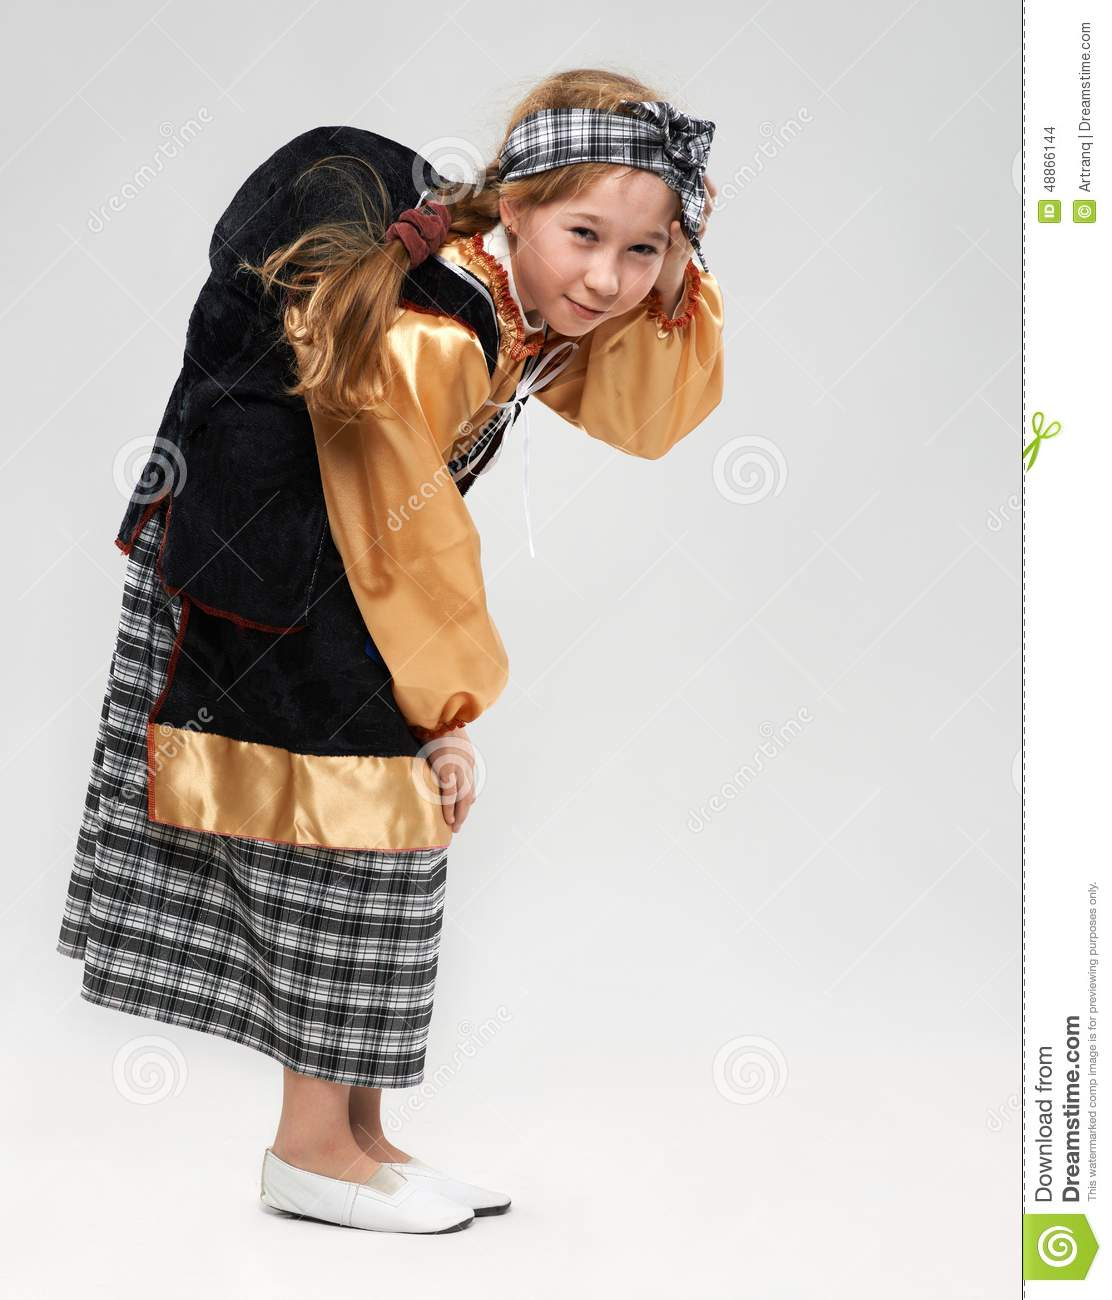 Redhead Girl In Witch Costume Stock Photo - Image: 48866144